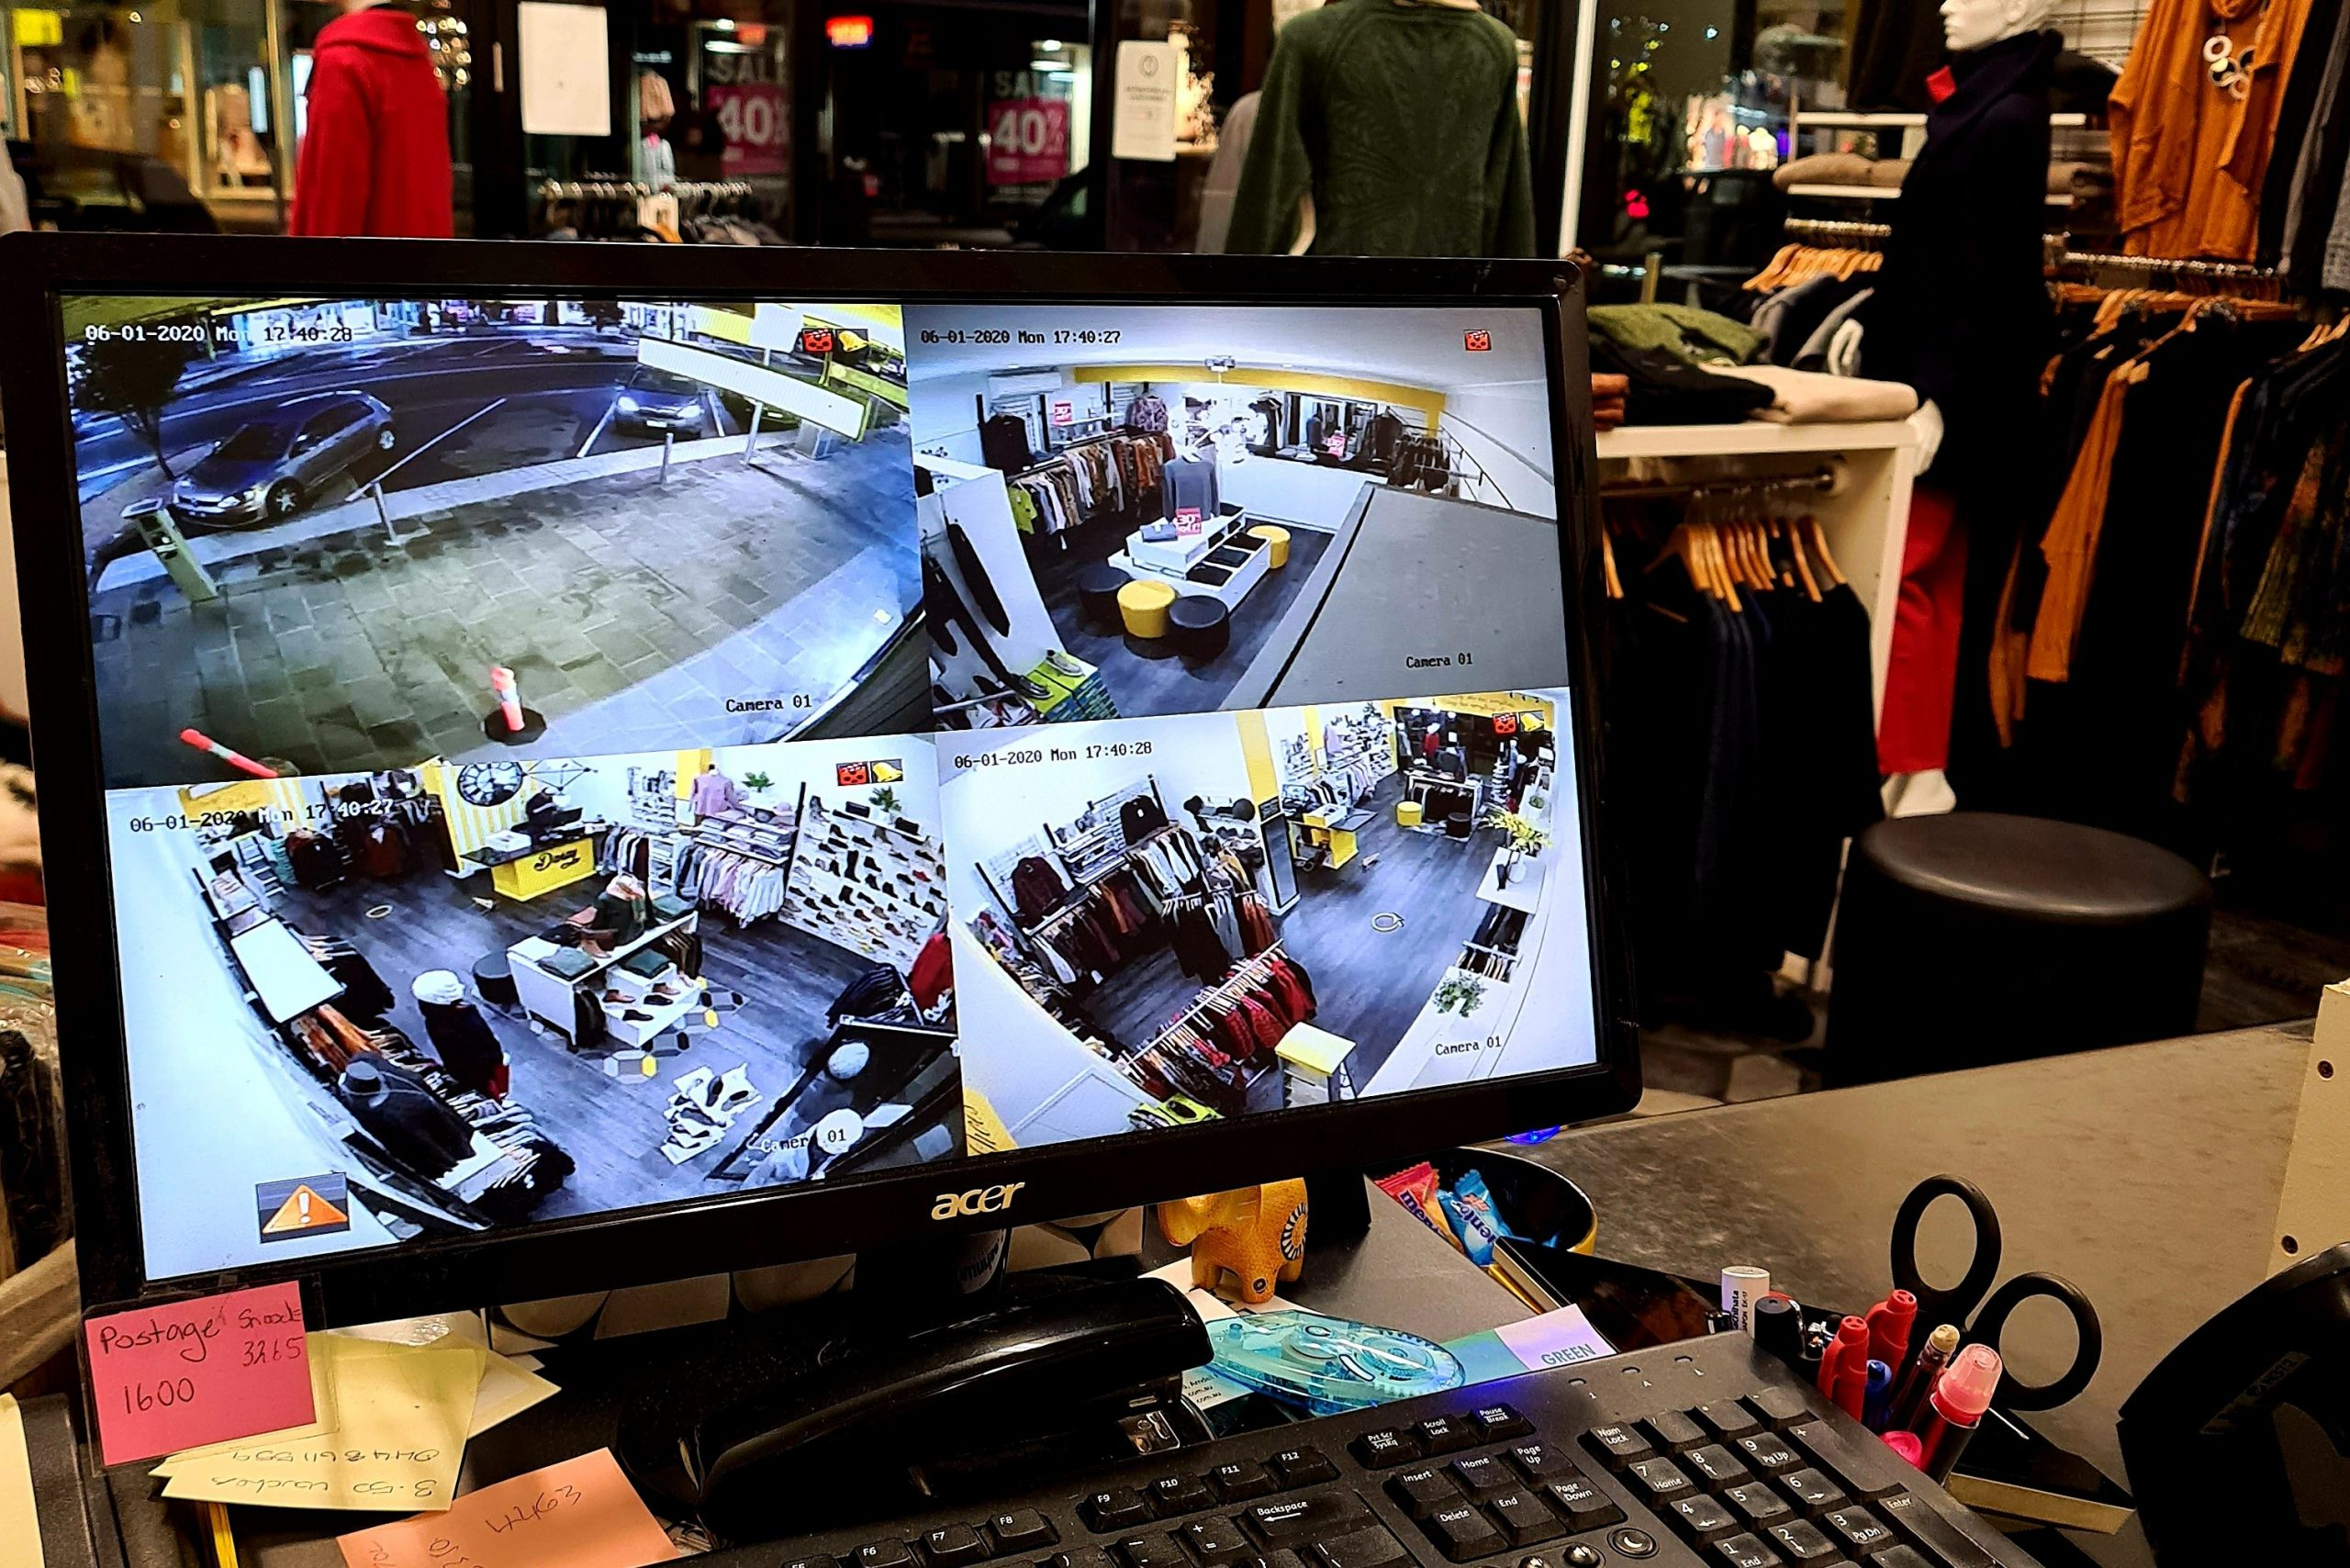 Security cameras installed in Warrnambool business